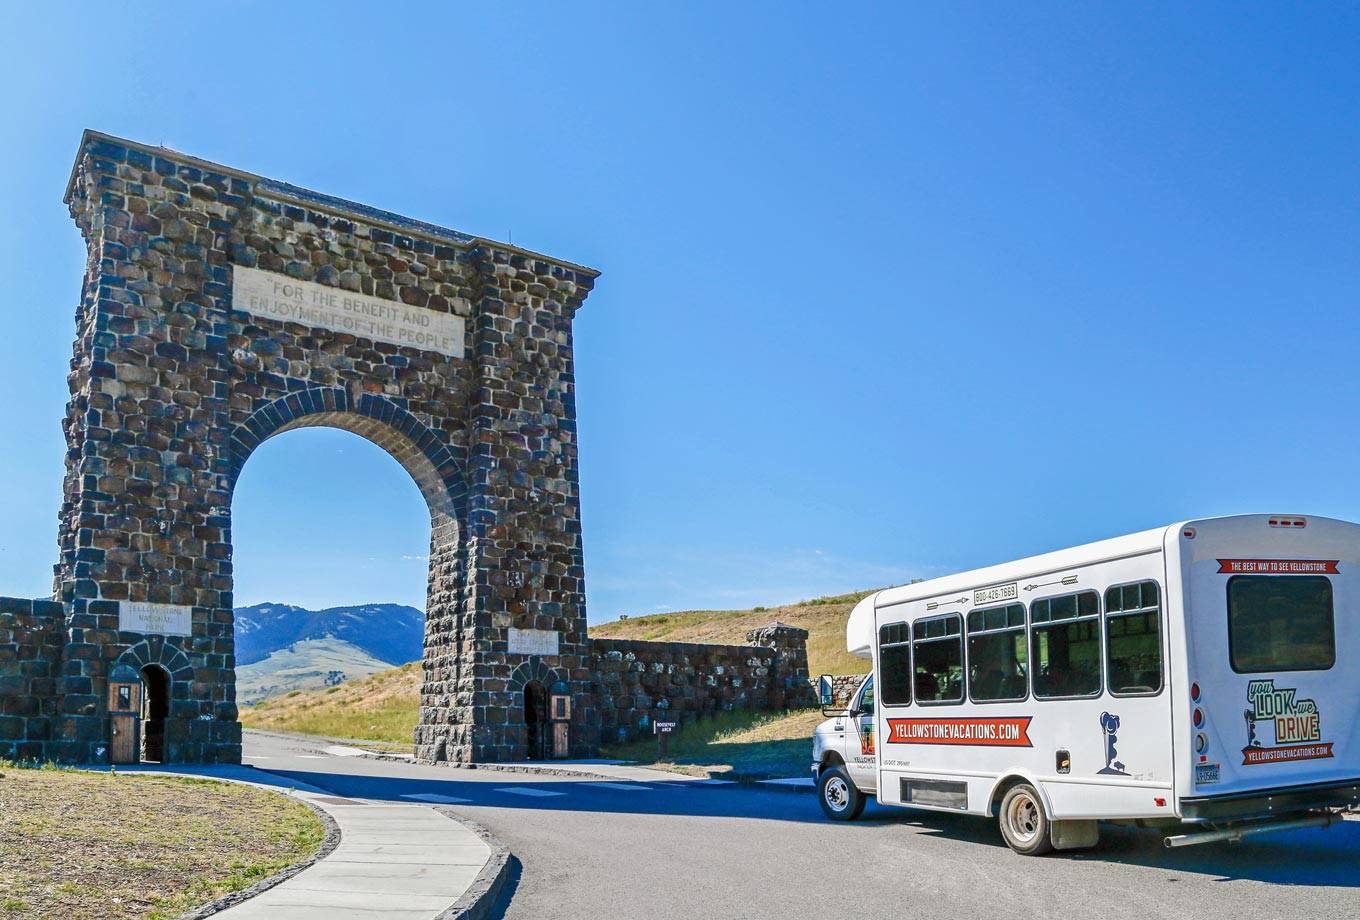 Yellowstone Vacation Tour bus from Gardiner, MT by the Roosevelt Arch at Yellowstone's north entrance